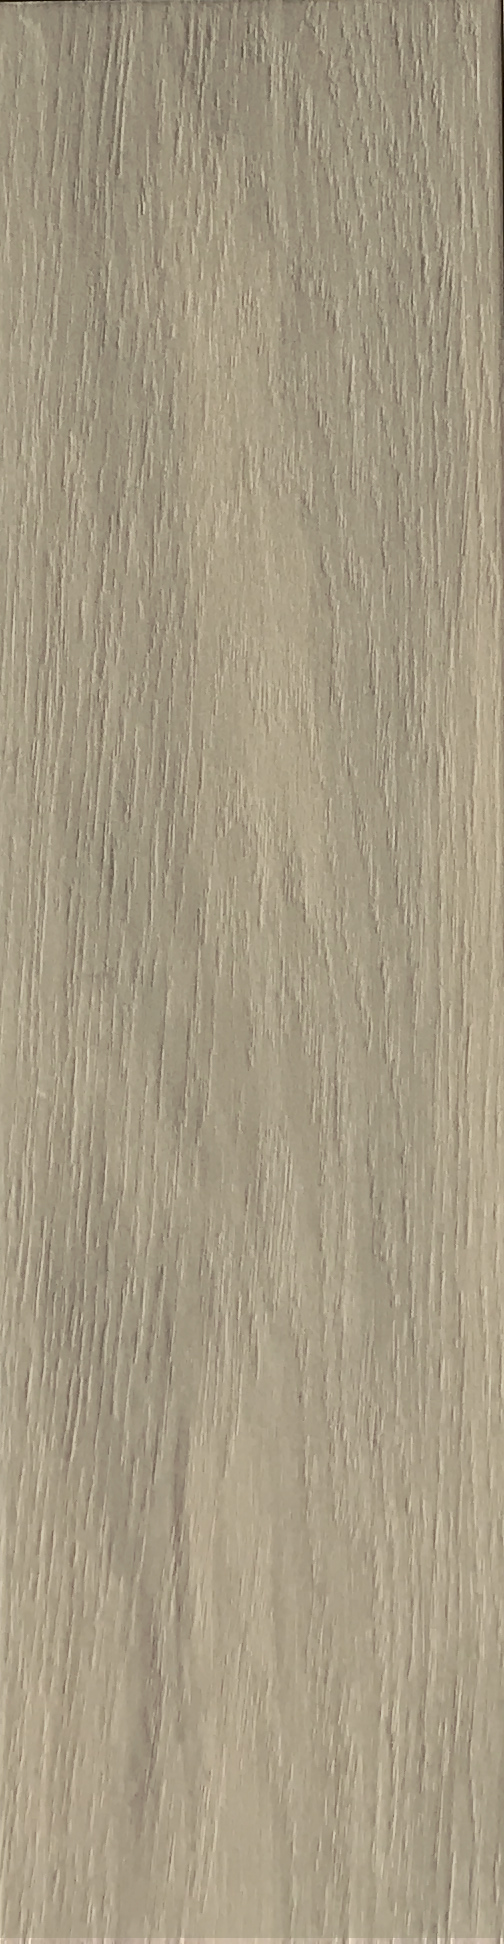 Alcora Mocha 9x35 porcelain wood look tile